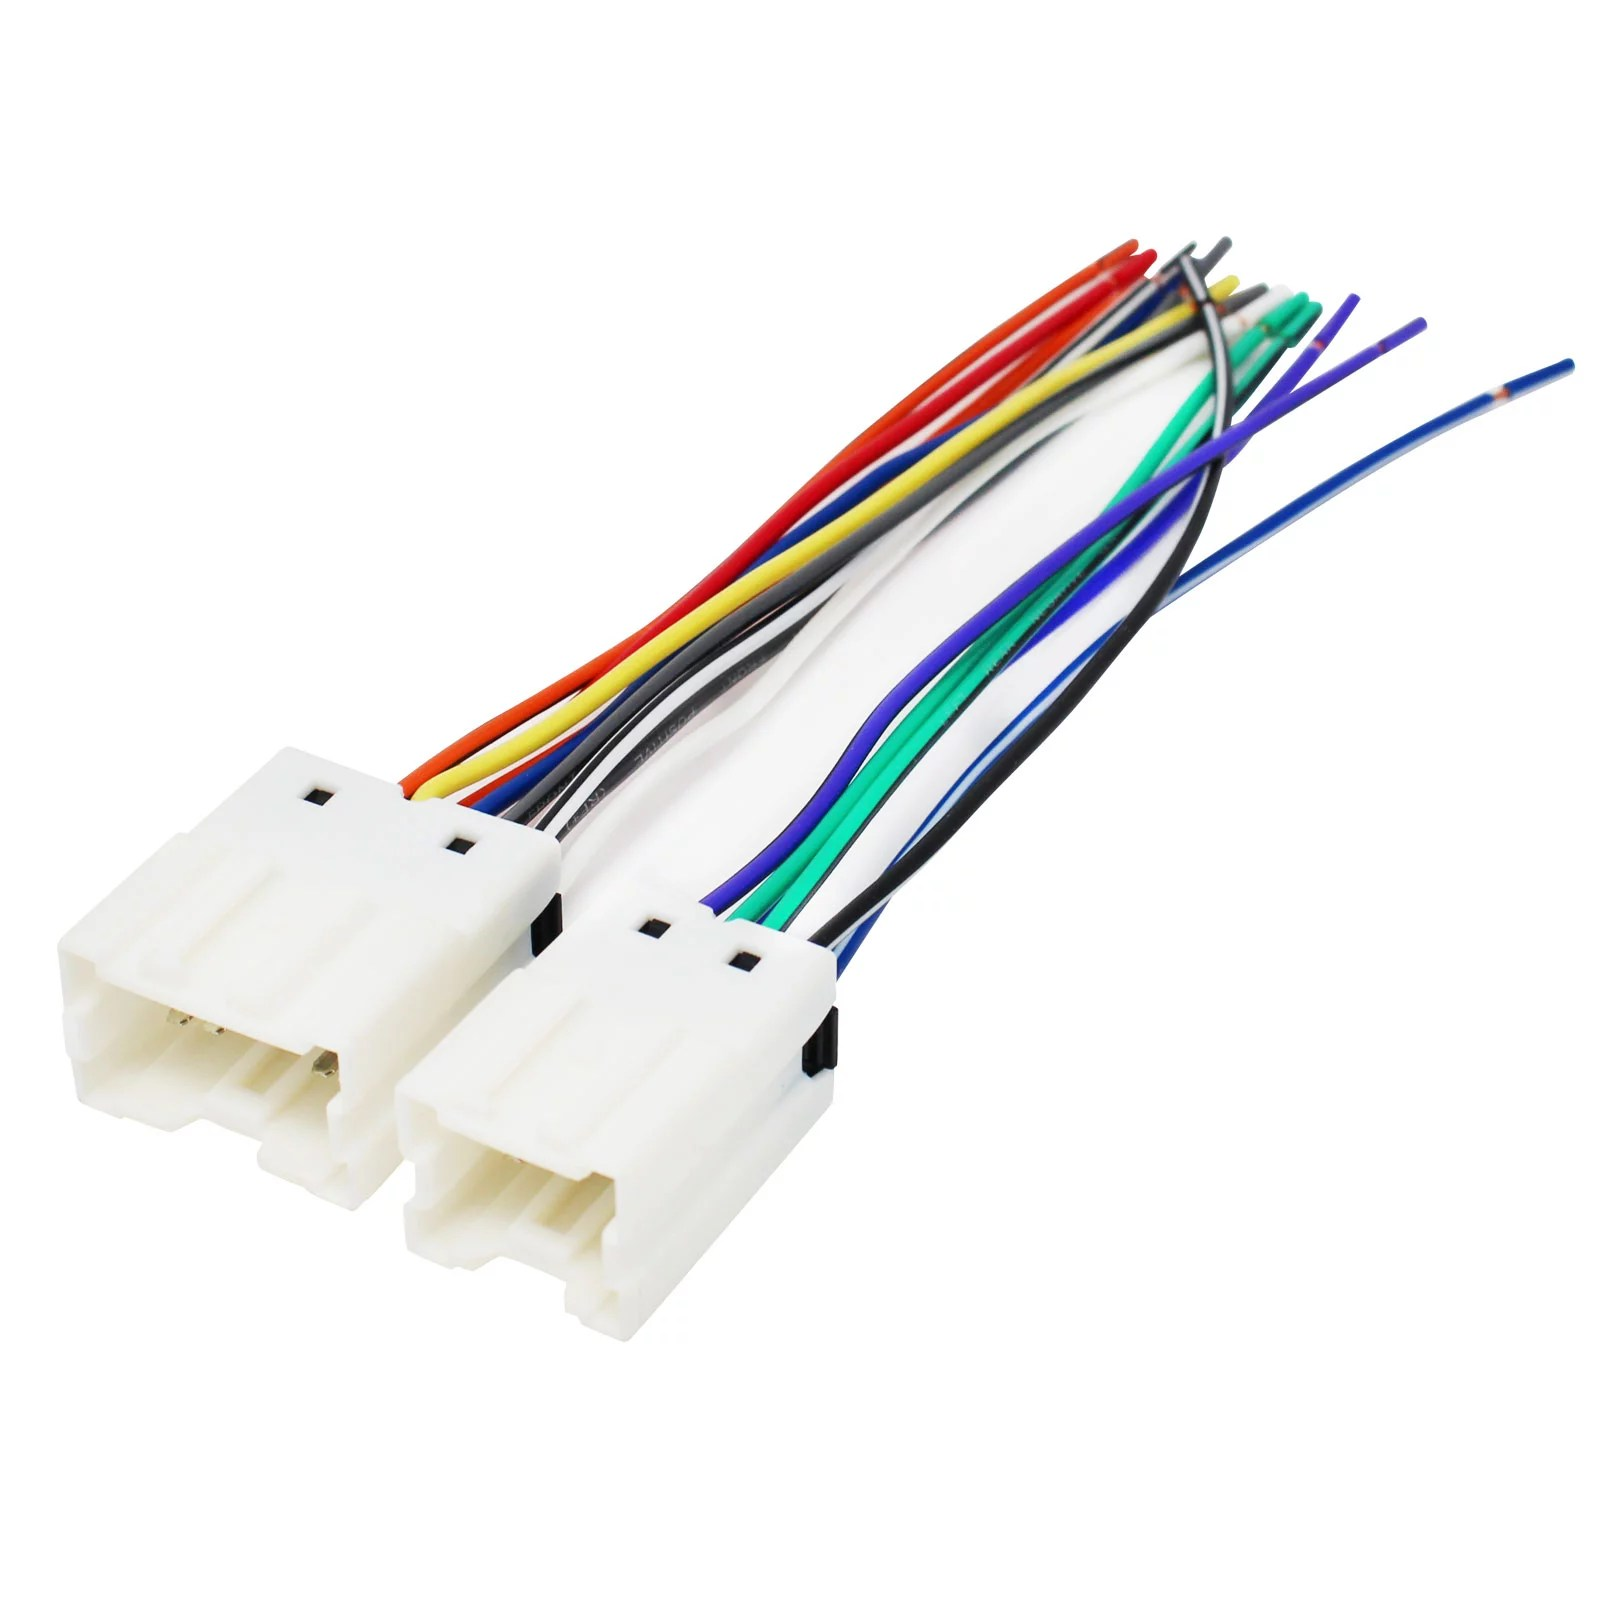 replacement radio wiring harness for 2006 nissan 350z grand touringreplacement radio wiring harness for 2006 nissan [ 1600 x 1600 Pixel ]